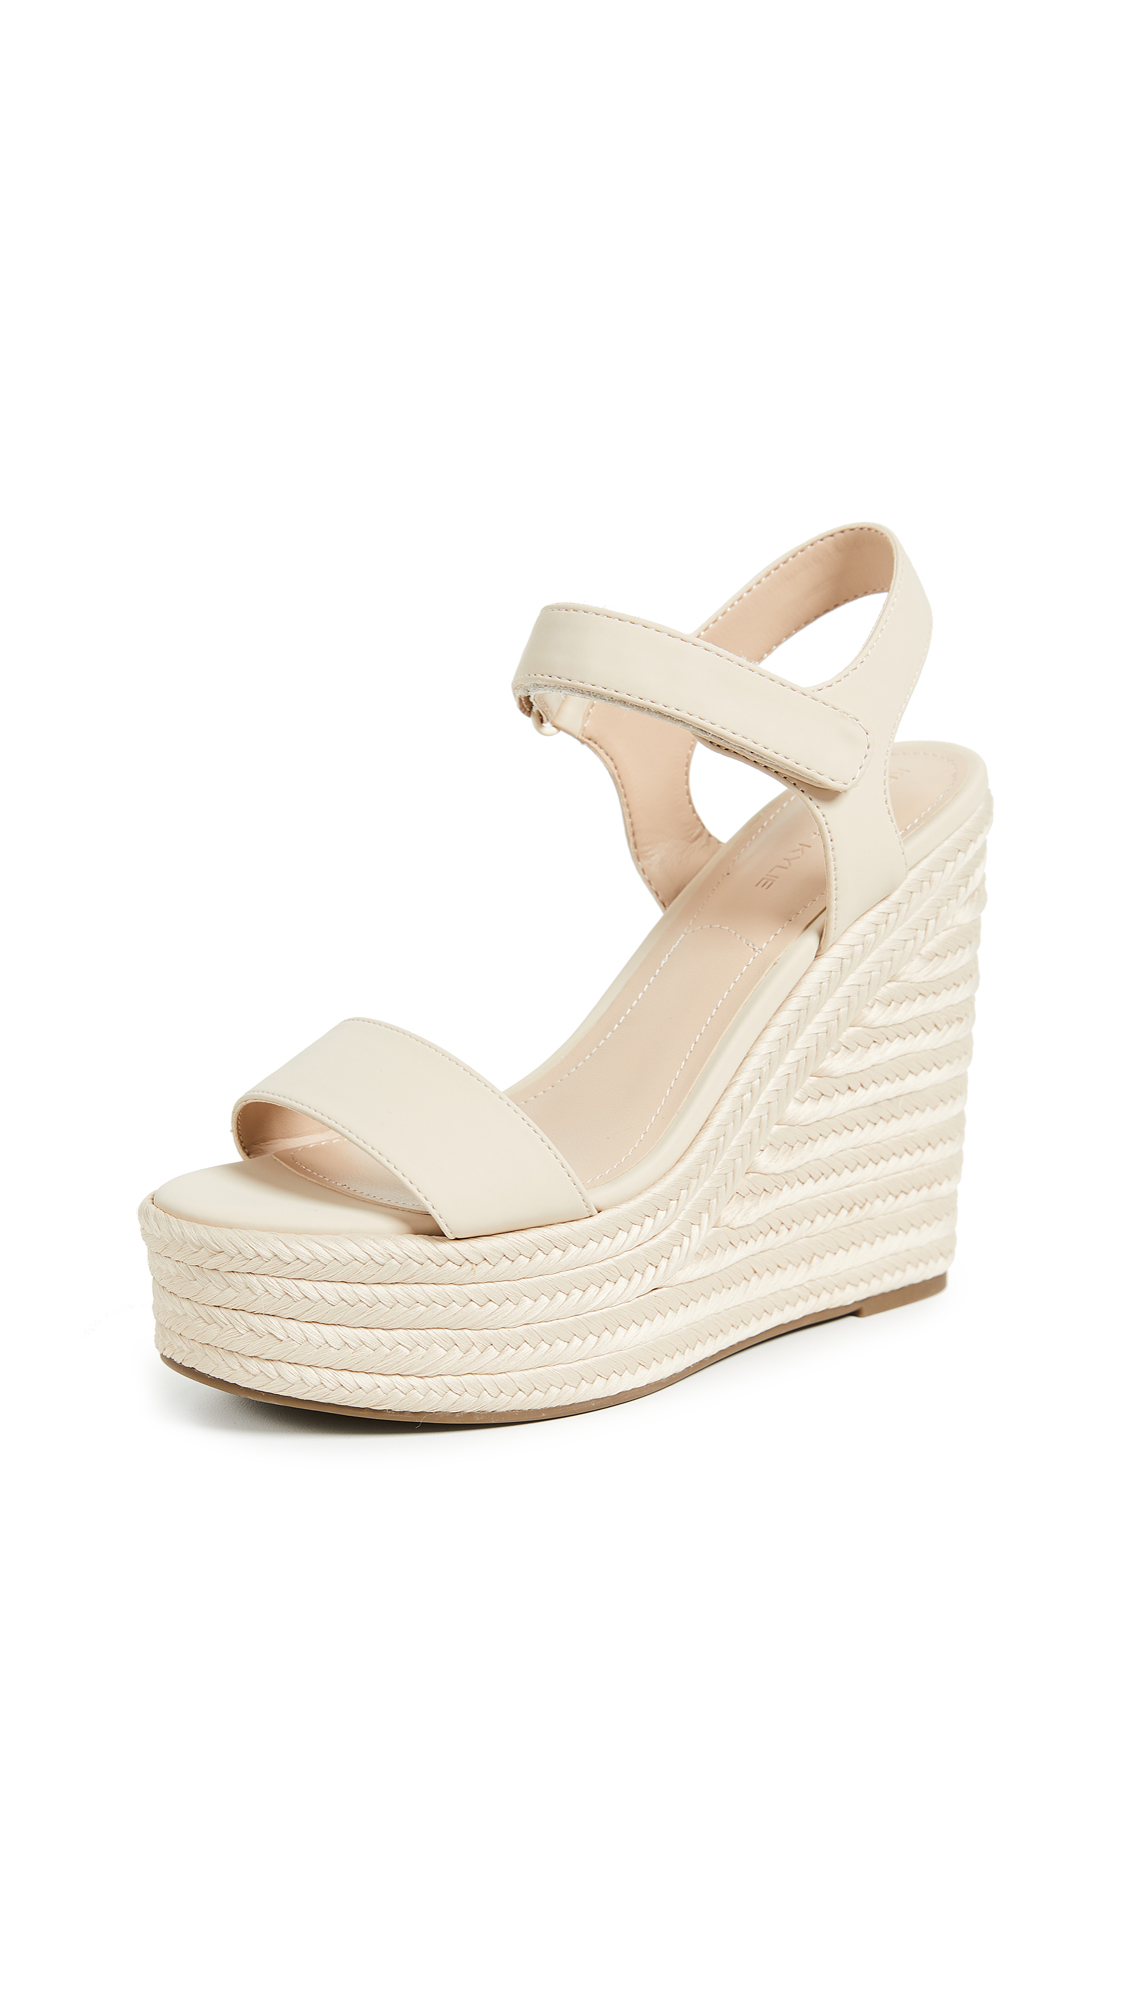 KENDALL + KYLIE Grand Wedge Espadrilles - Natural